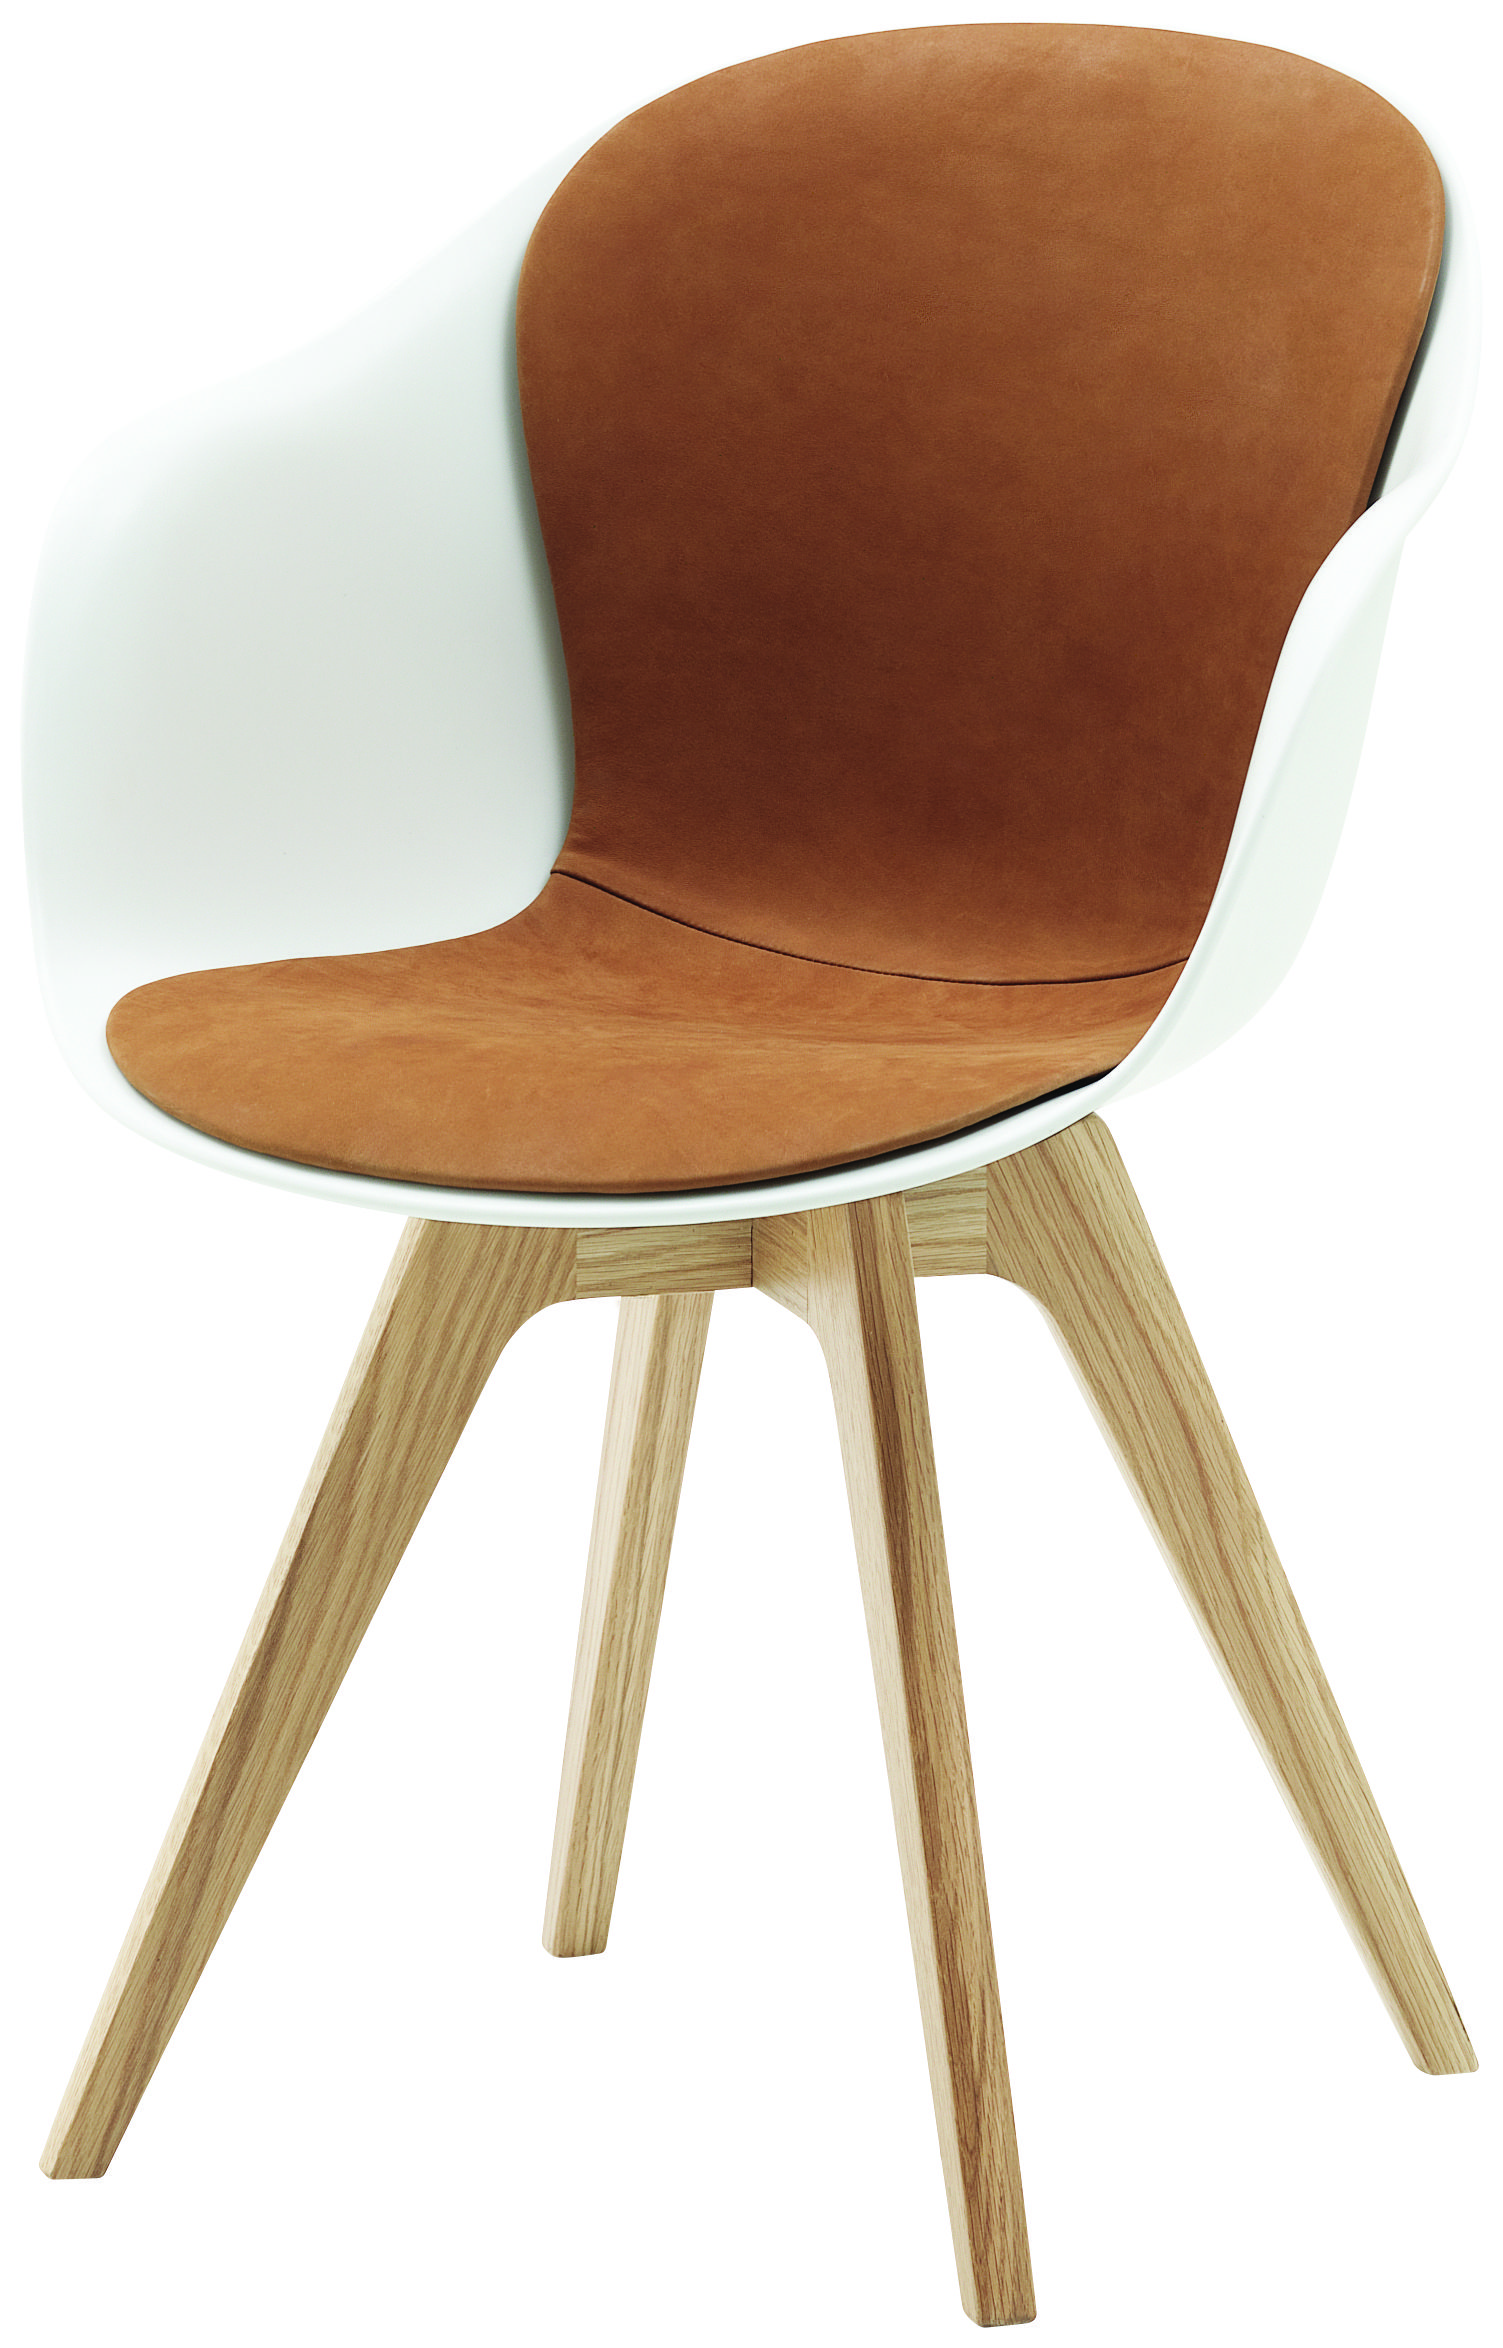 Adelaide Dining Chair With Tan Leather Insert On Seat Dining